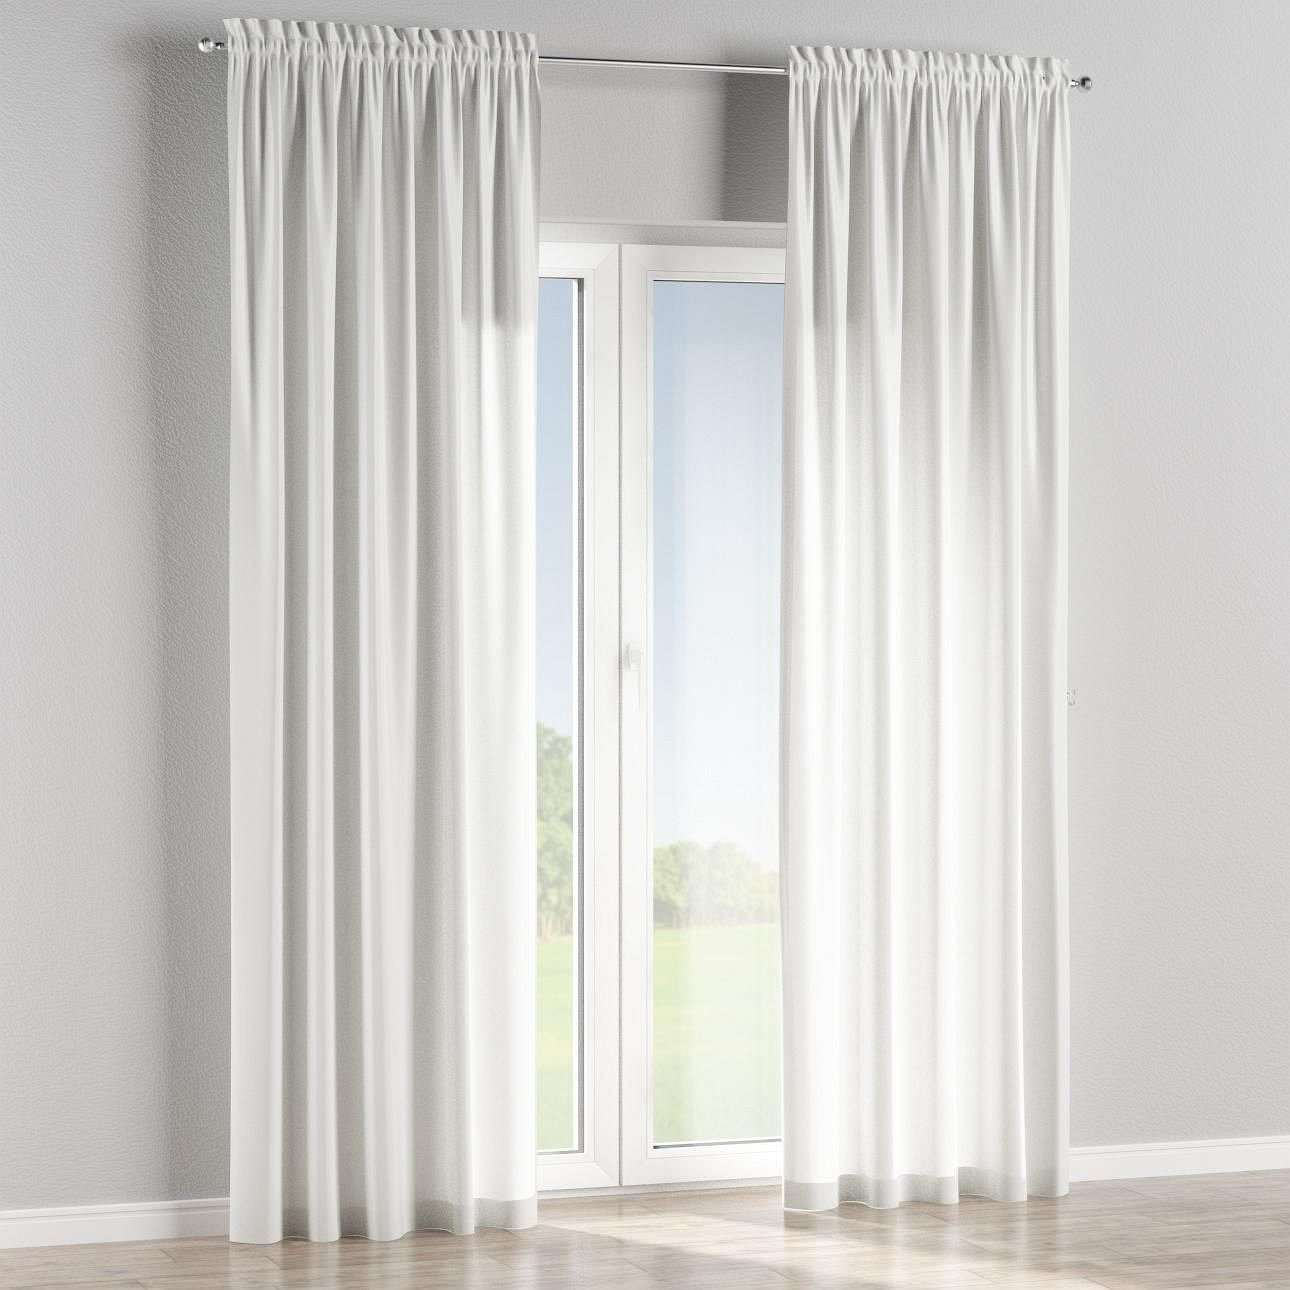 Slot and frill curtains in collection Ashley, fabric: 137-47